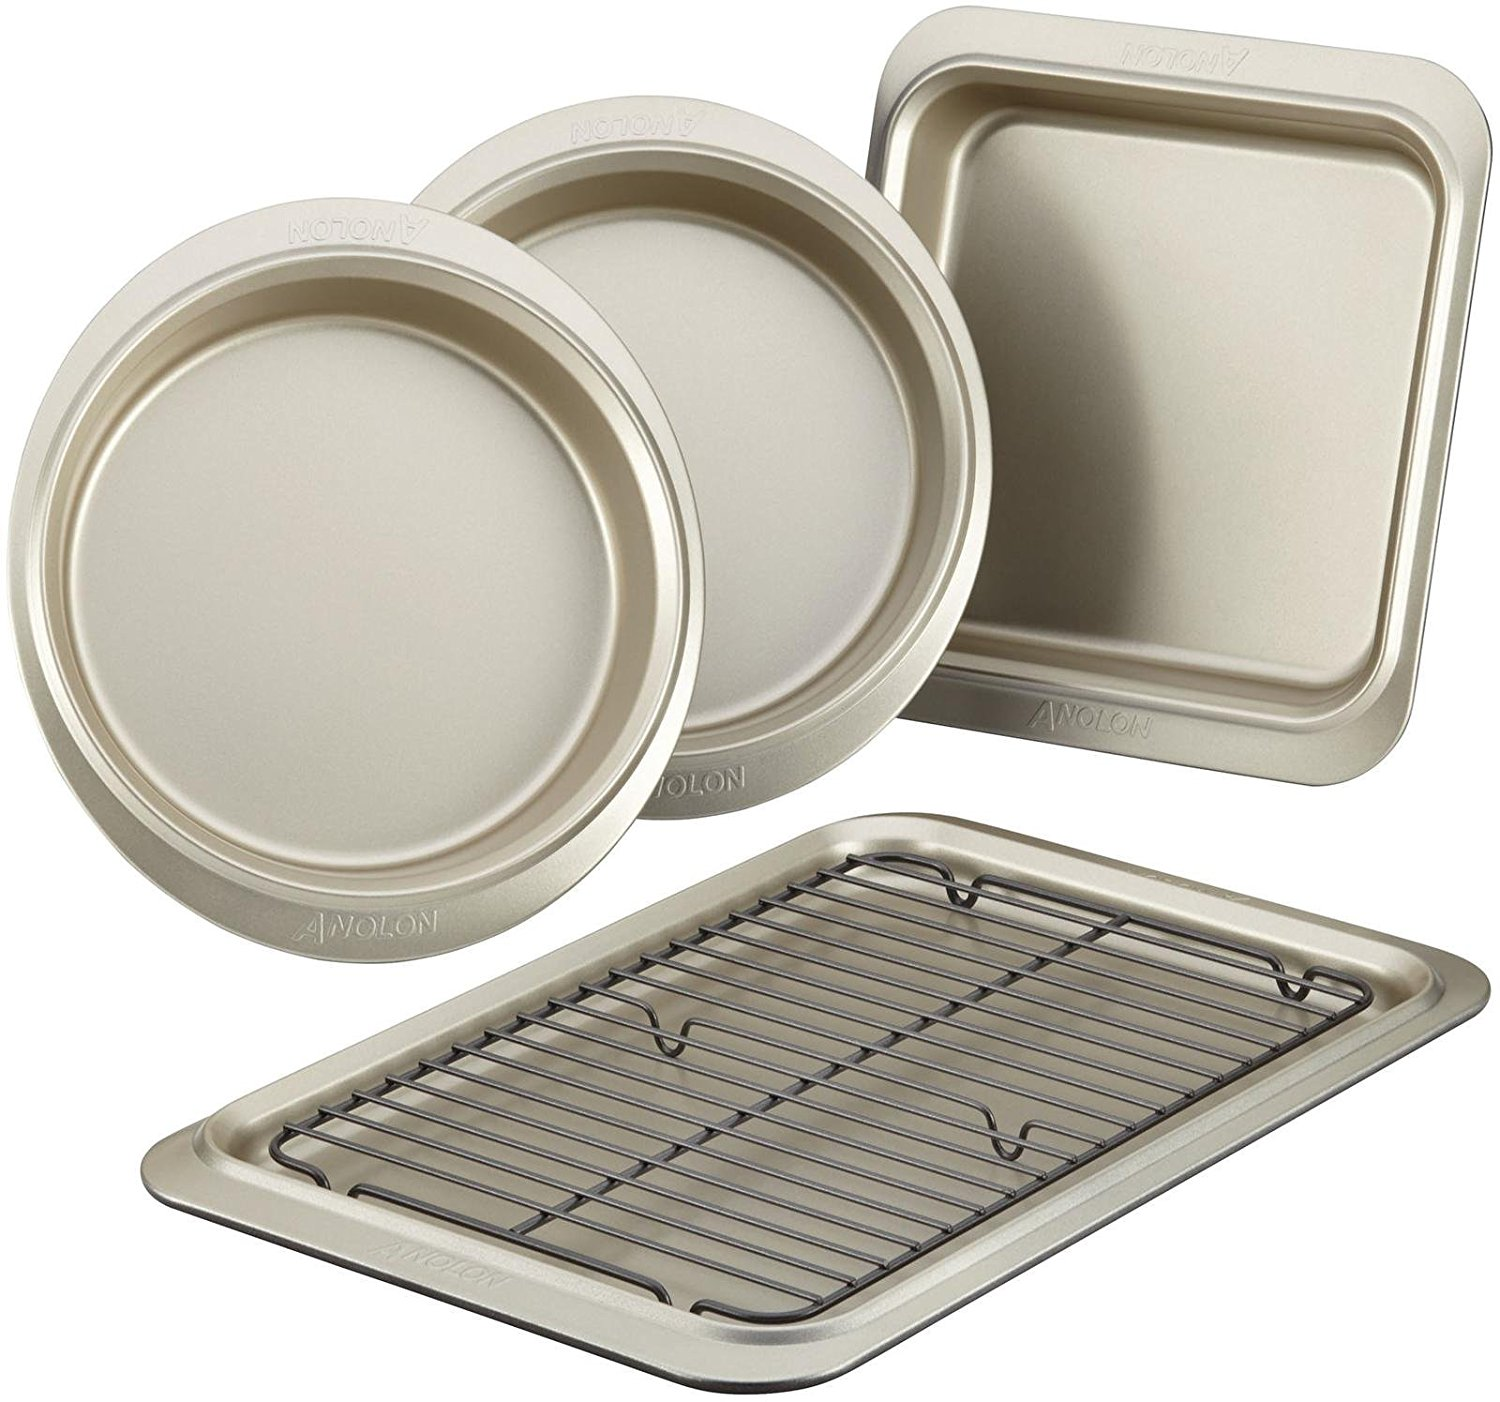 59967 Nonstick Bakeware Set, Onyx Pewter, 5-Piece, Anolon(r) Bakeware features premium-grade construction and... by